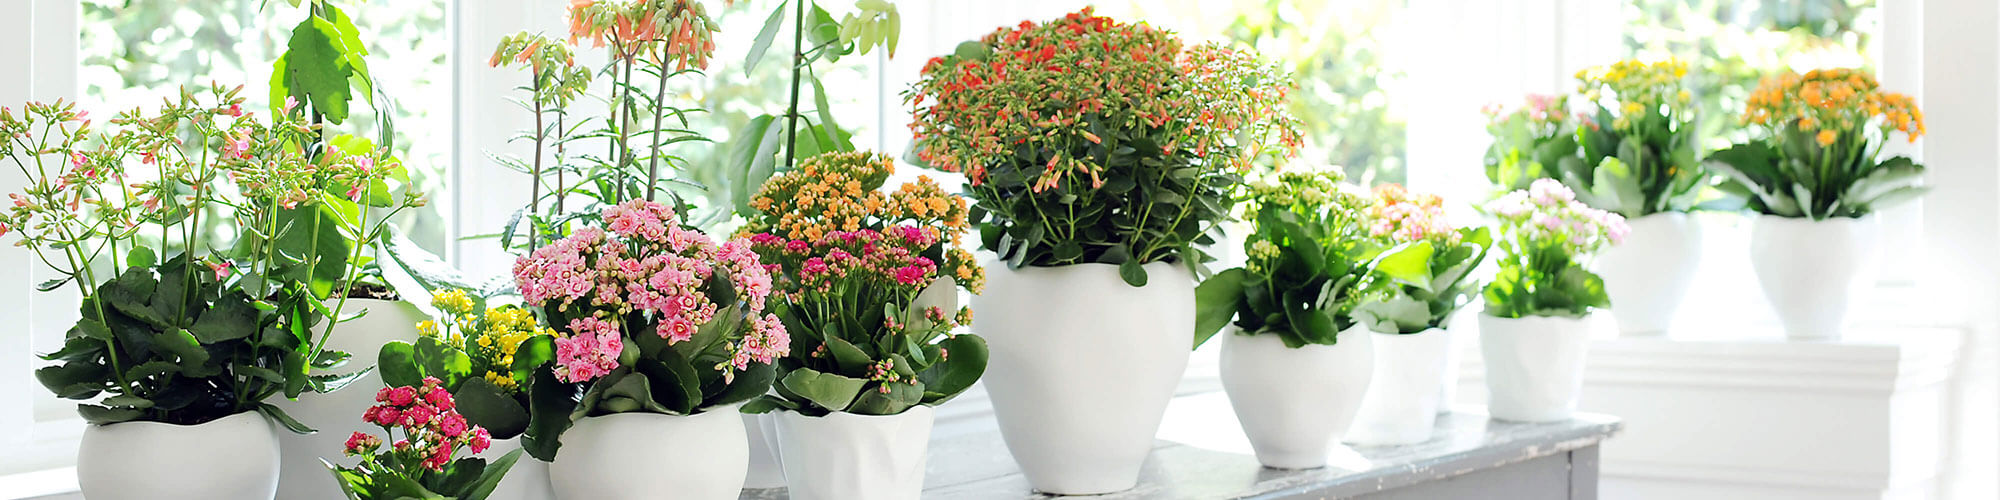 Buy best quality plants online! banner 2